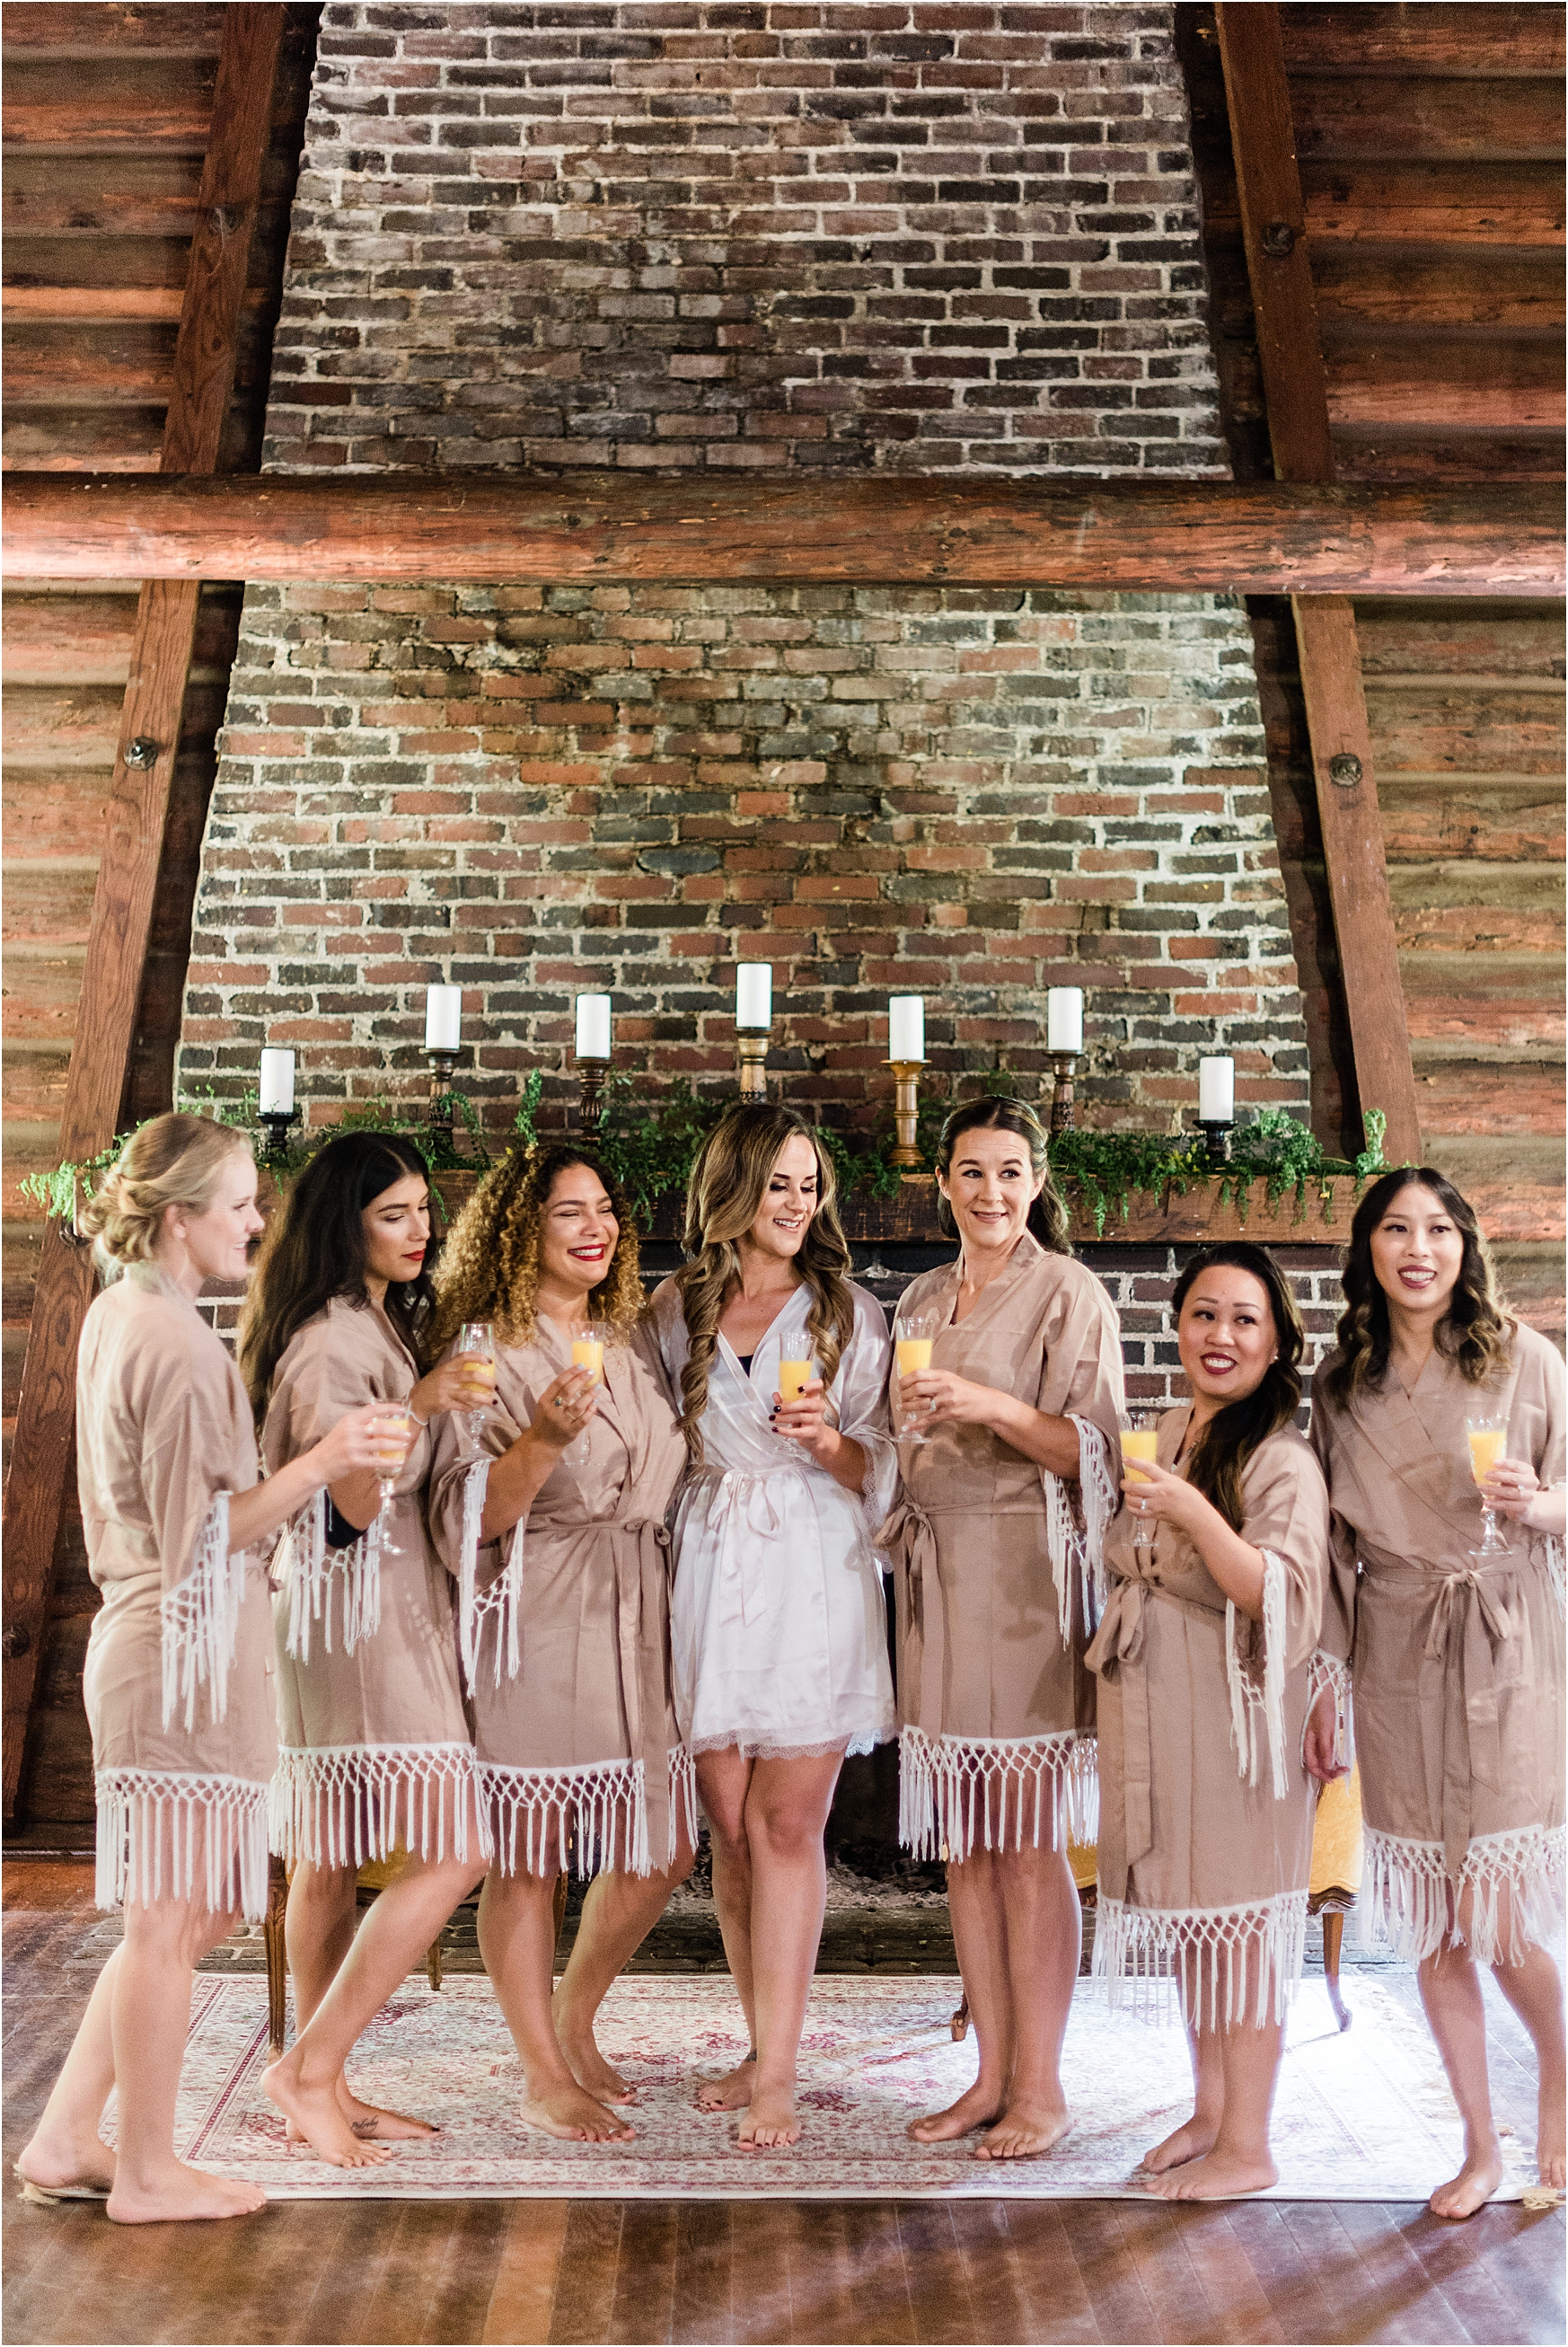 Bridesmaids getting ready at Destination Wedding at Camp Lane, Oregon. Image by Forthright Photo.